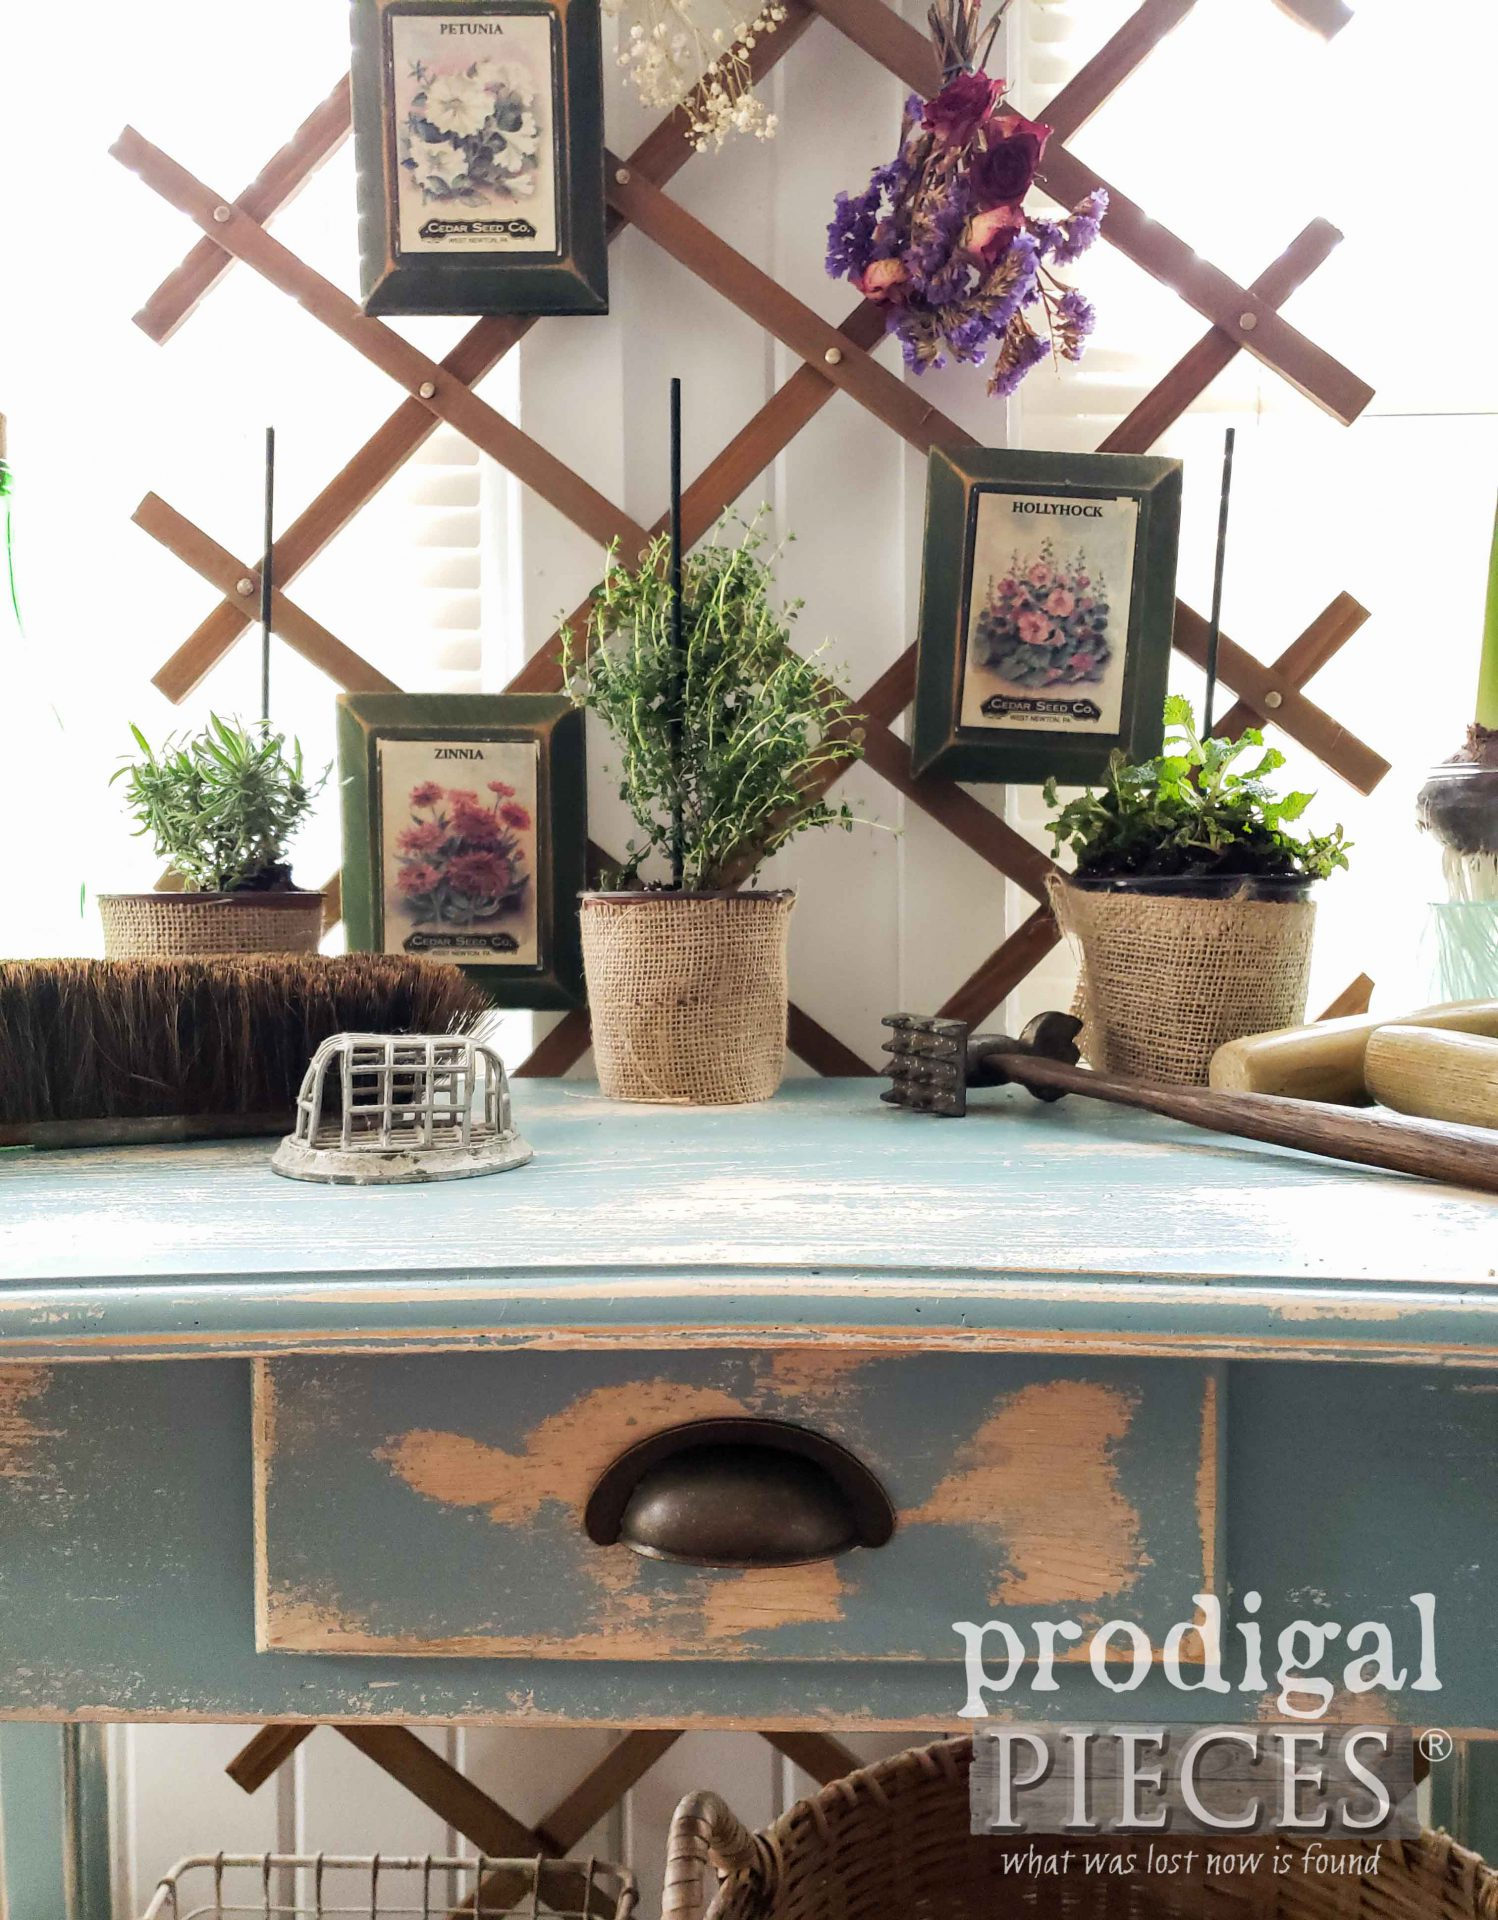 DIY Console Table made from Repurposed Desk by Larissa of Prodigal Pieces | prodigalpieces.com #prodigalpieces #furniture #home #furniture #homedecor